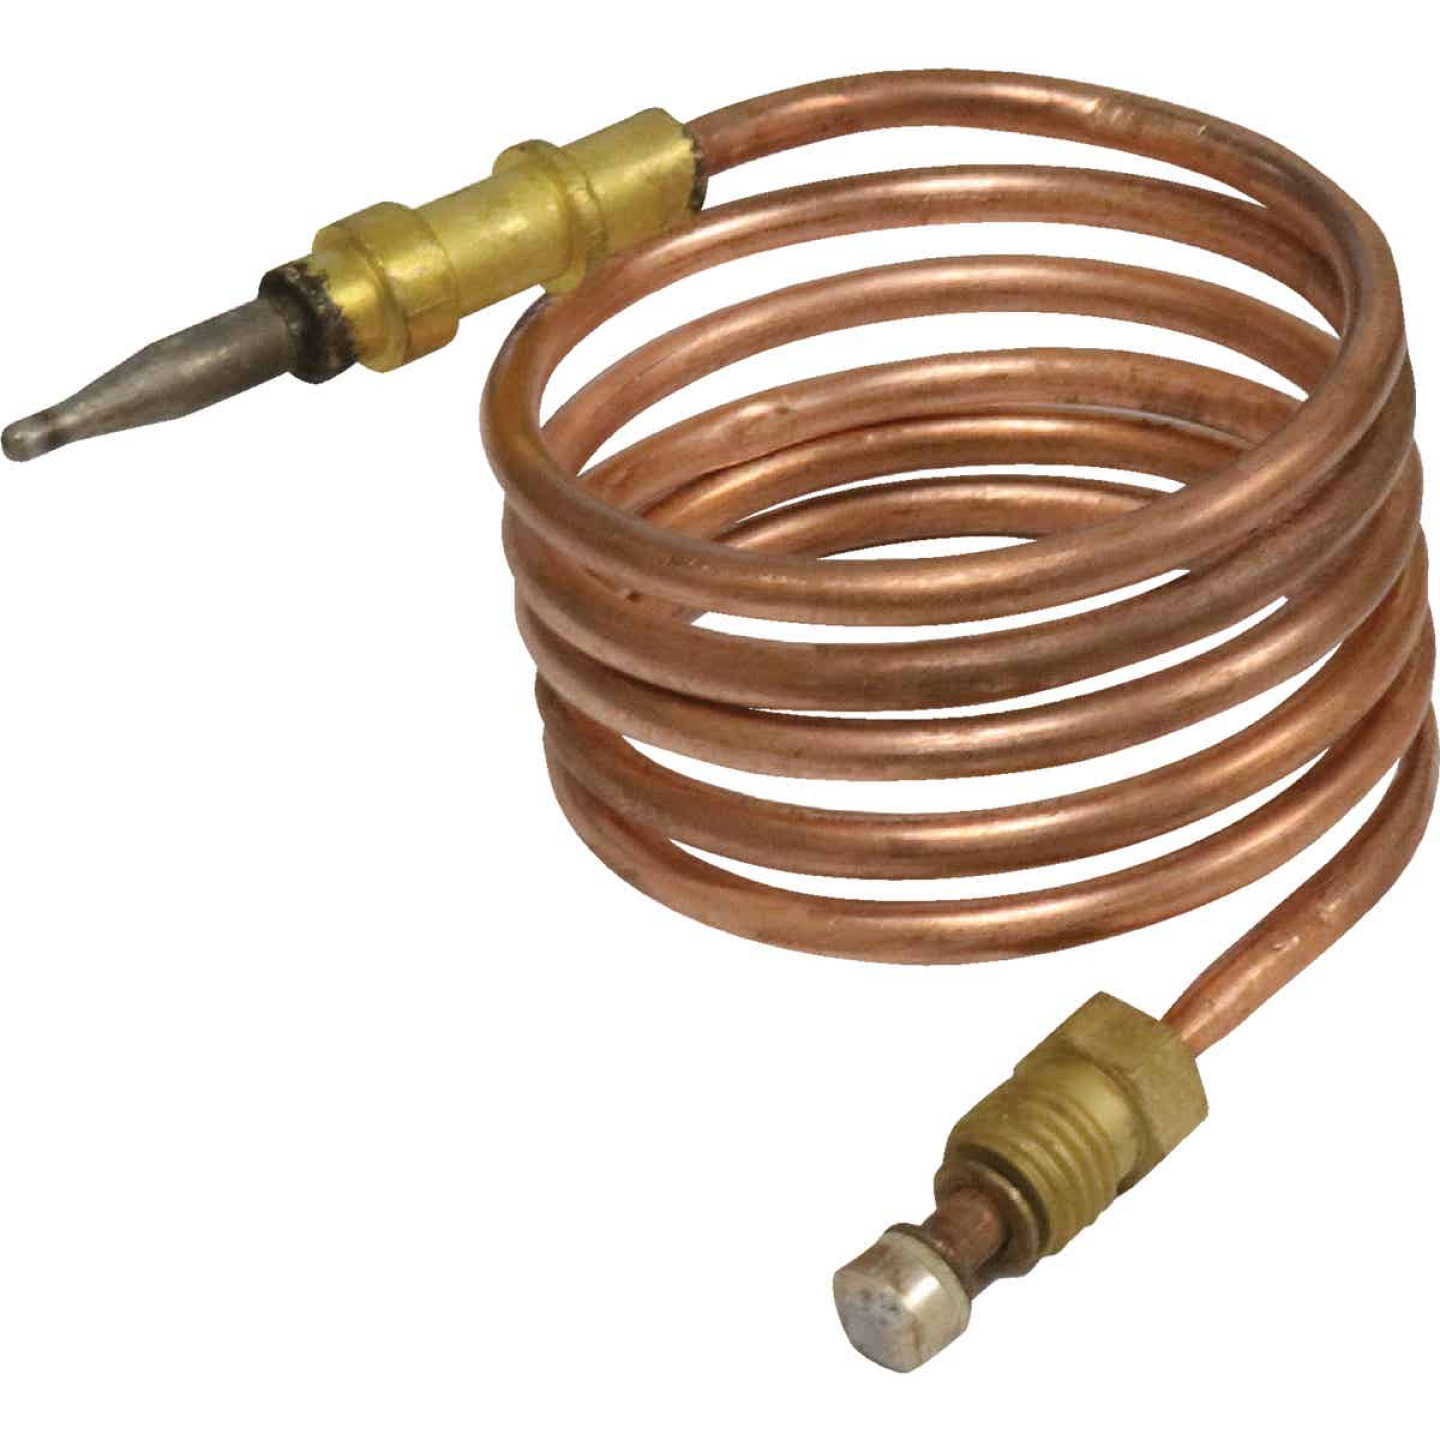 KozyWorld 31 In. Replacement Thermocouple Image 1